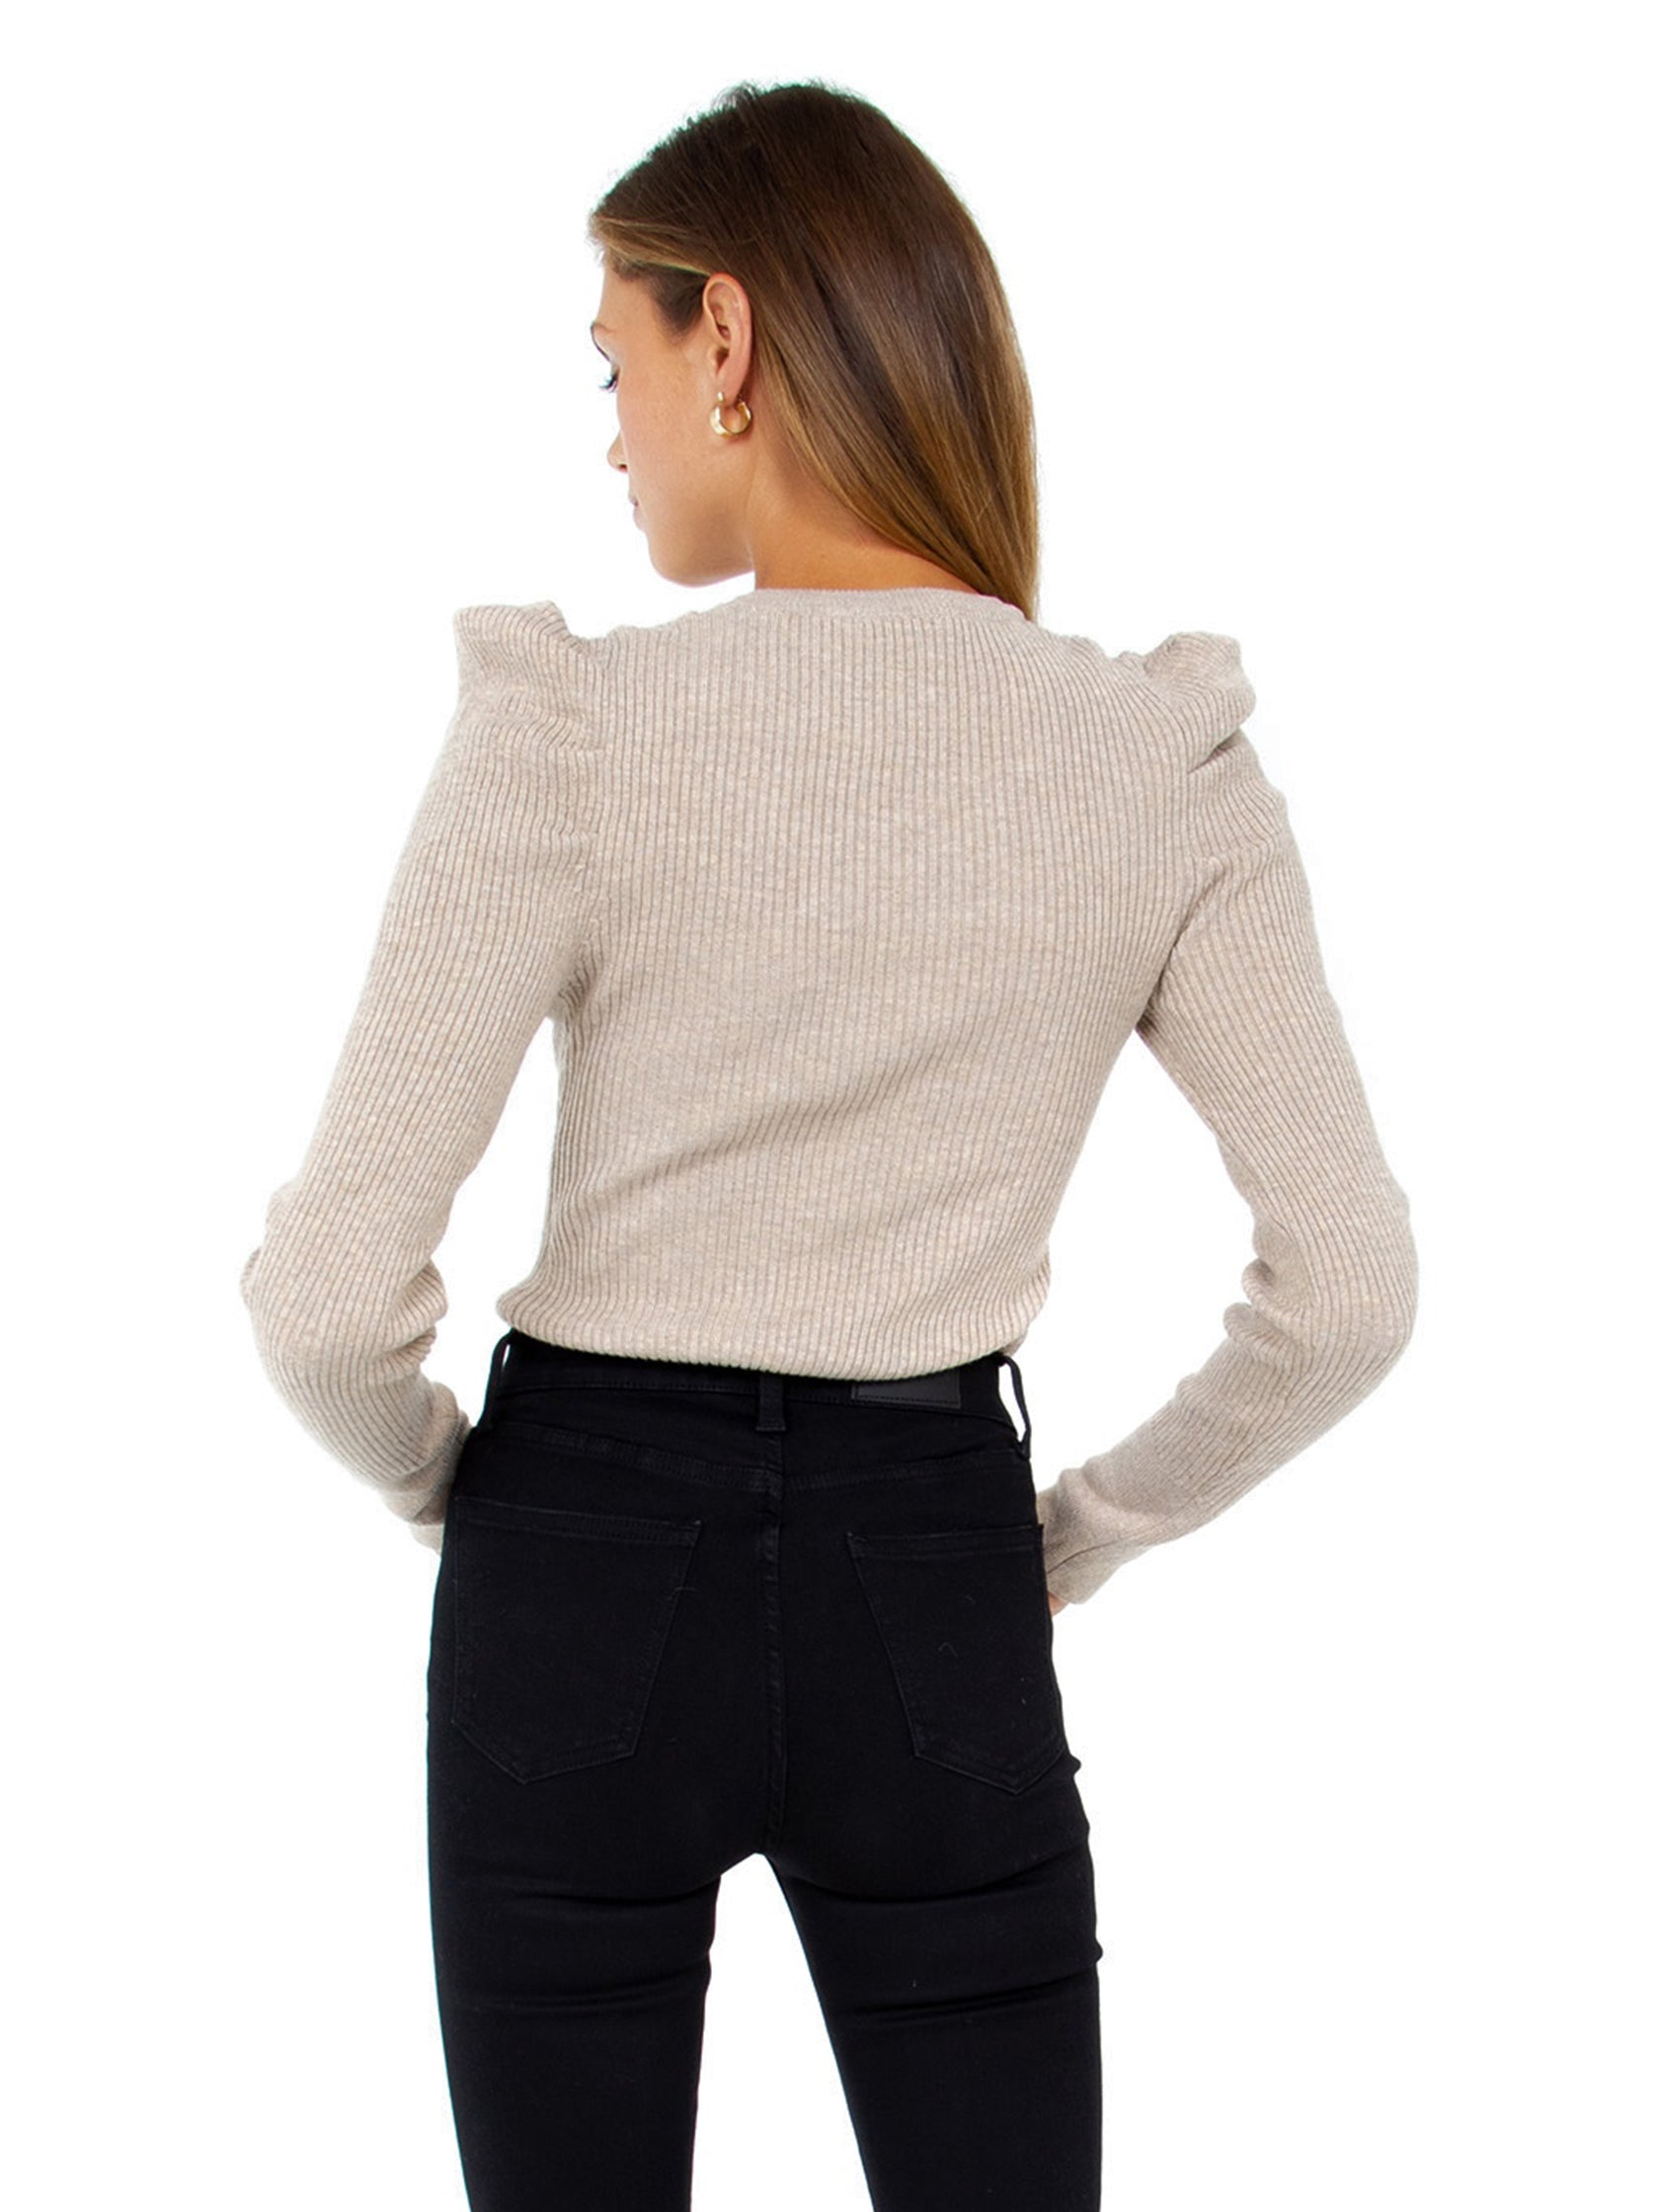 Women outfit in a sweater rental from FashionPass called Puff Sleeve Rib Sweater